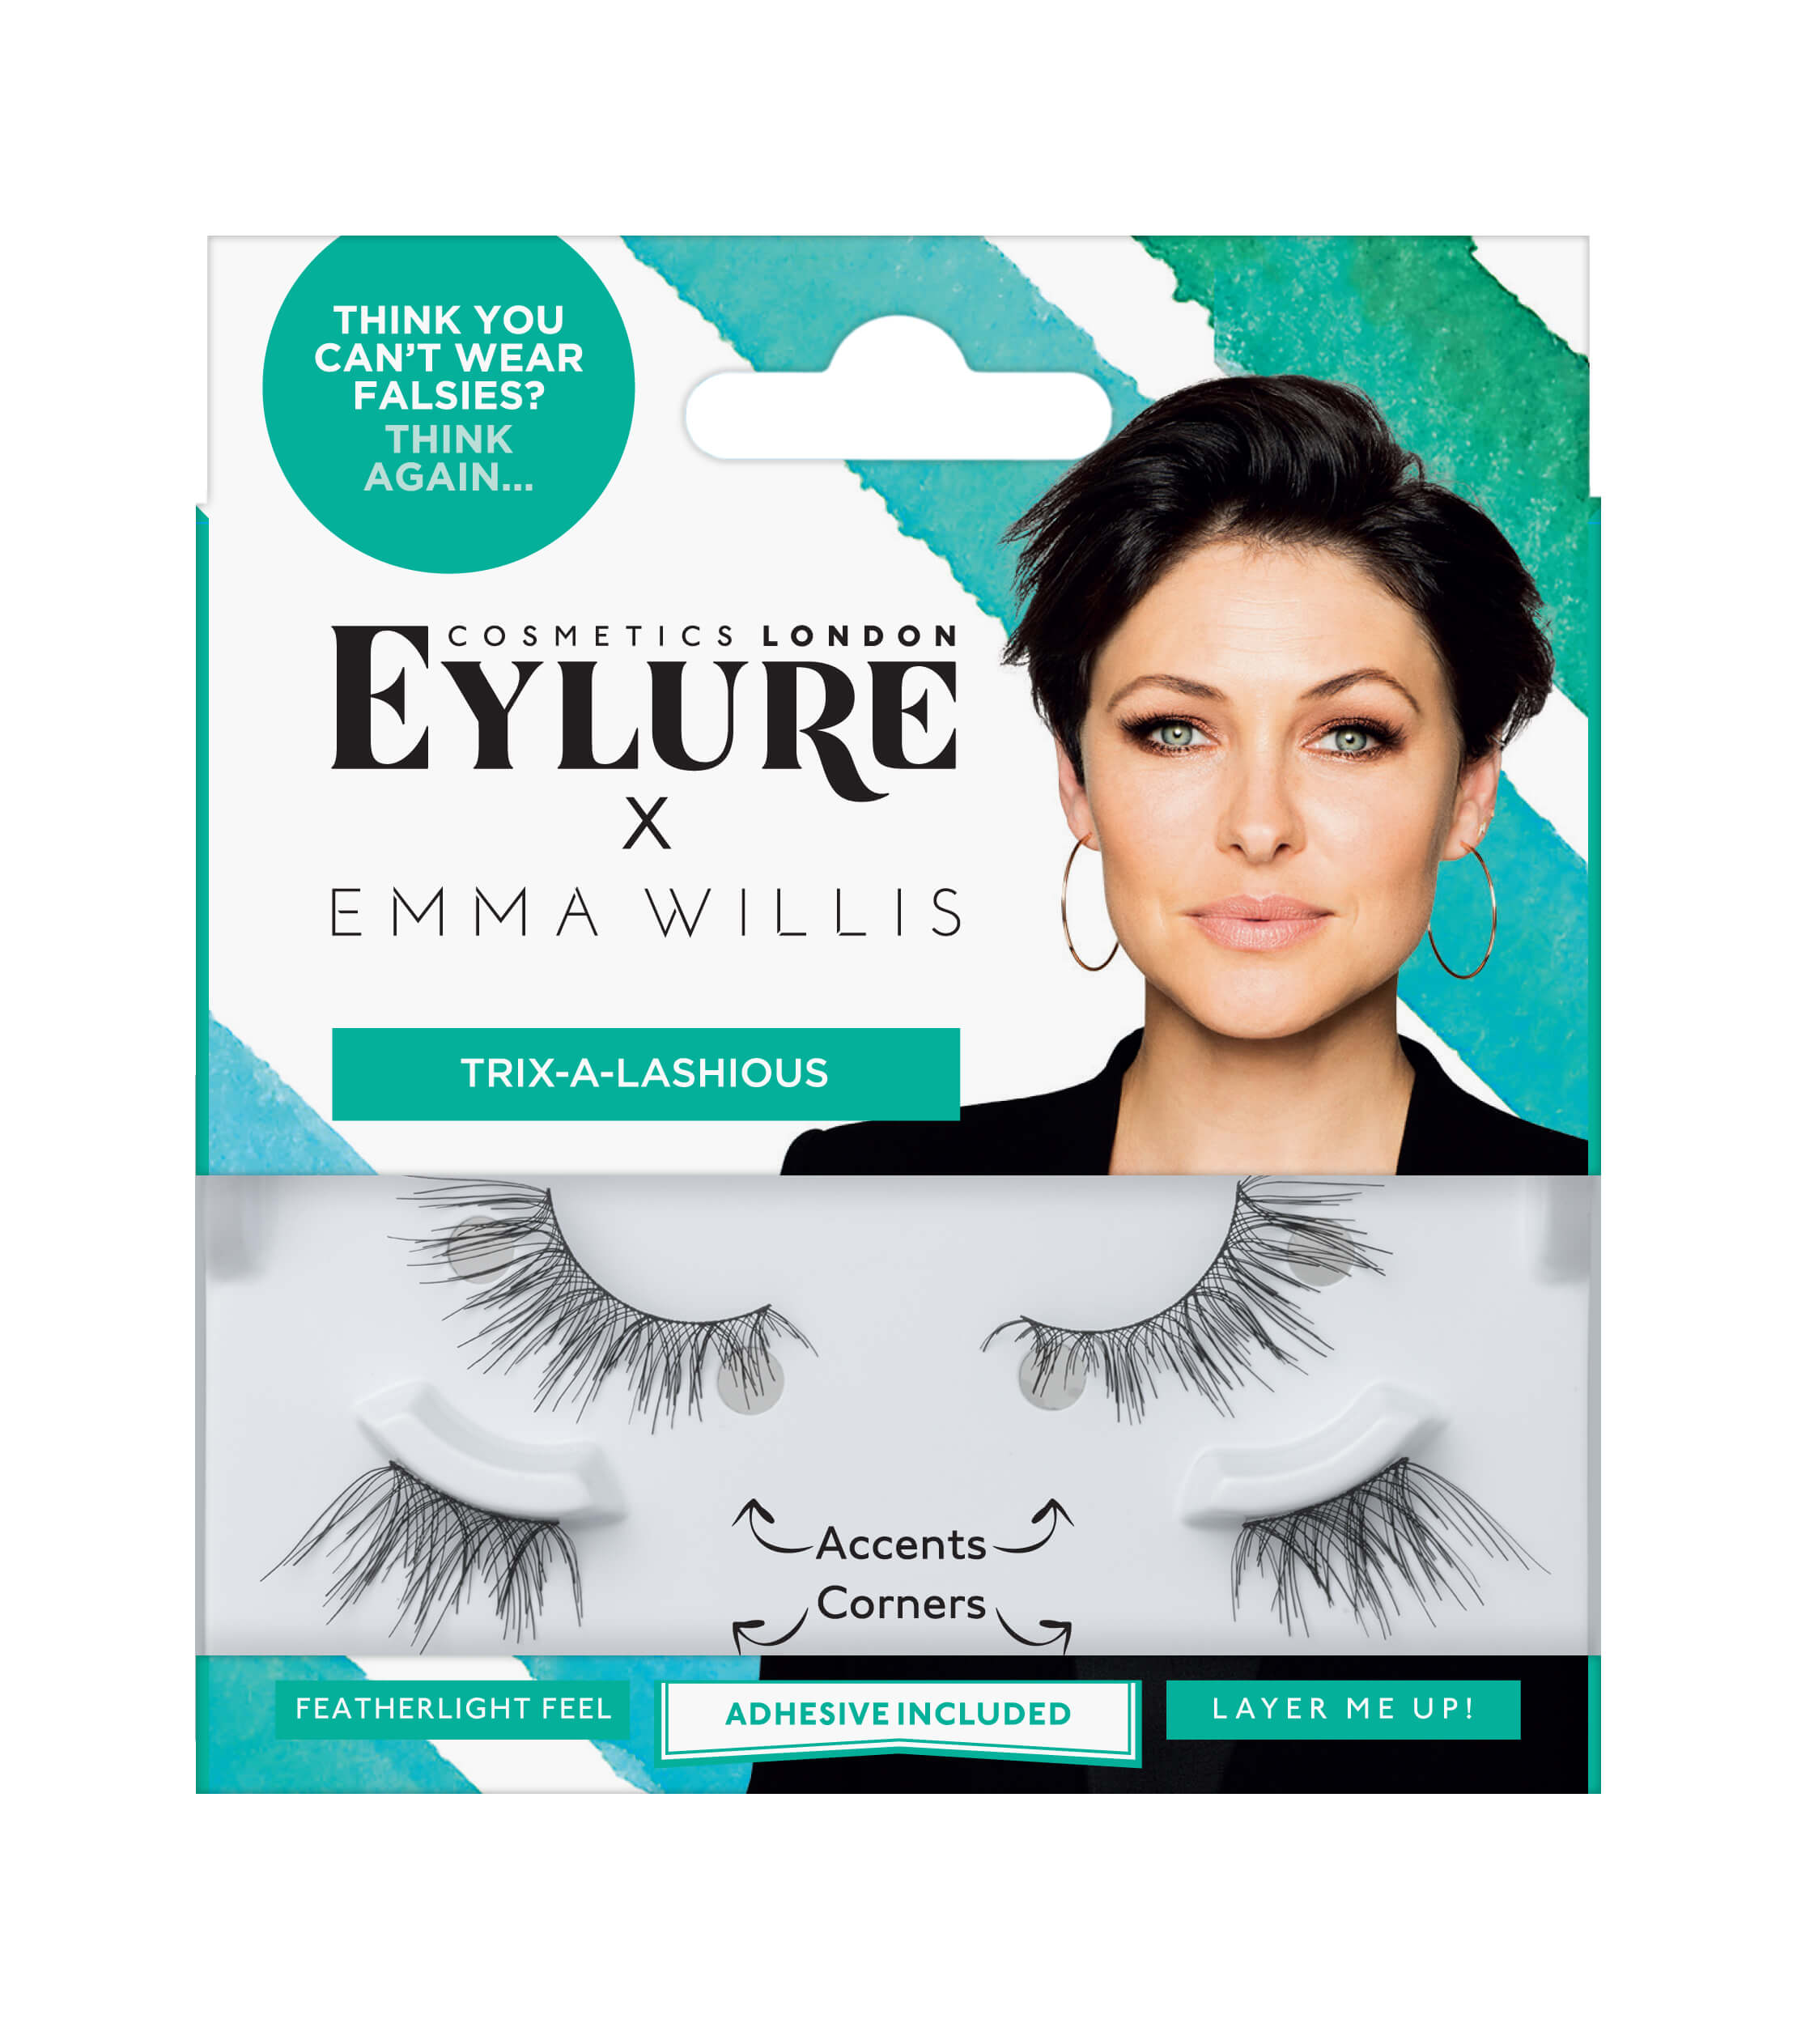 Eylure X Emma Willis - Trix-a-Lashious Lashes